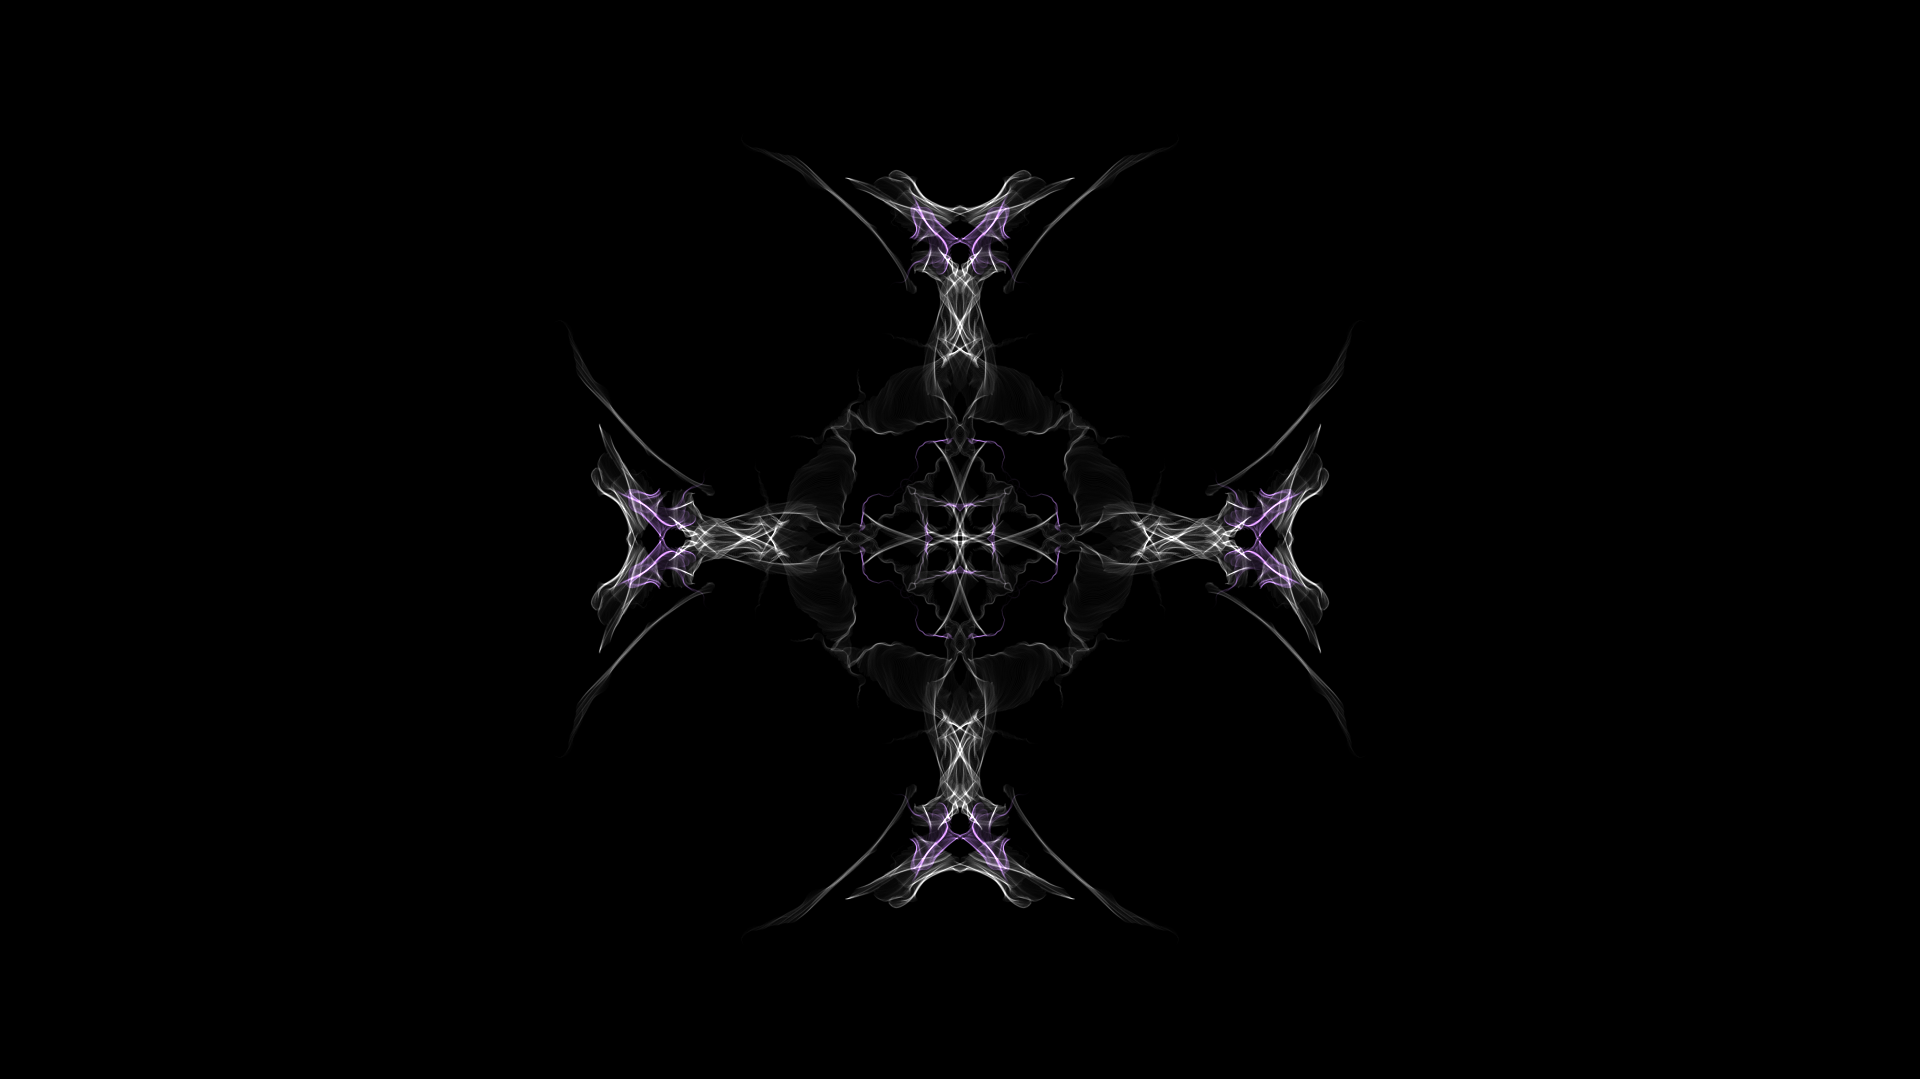 wallpaper gothic iron cross by arimus79 d6n0fnd download